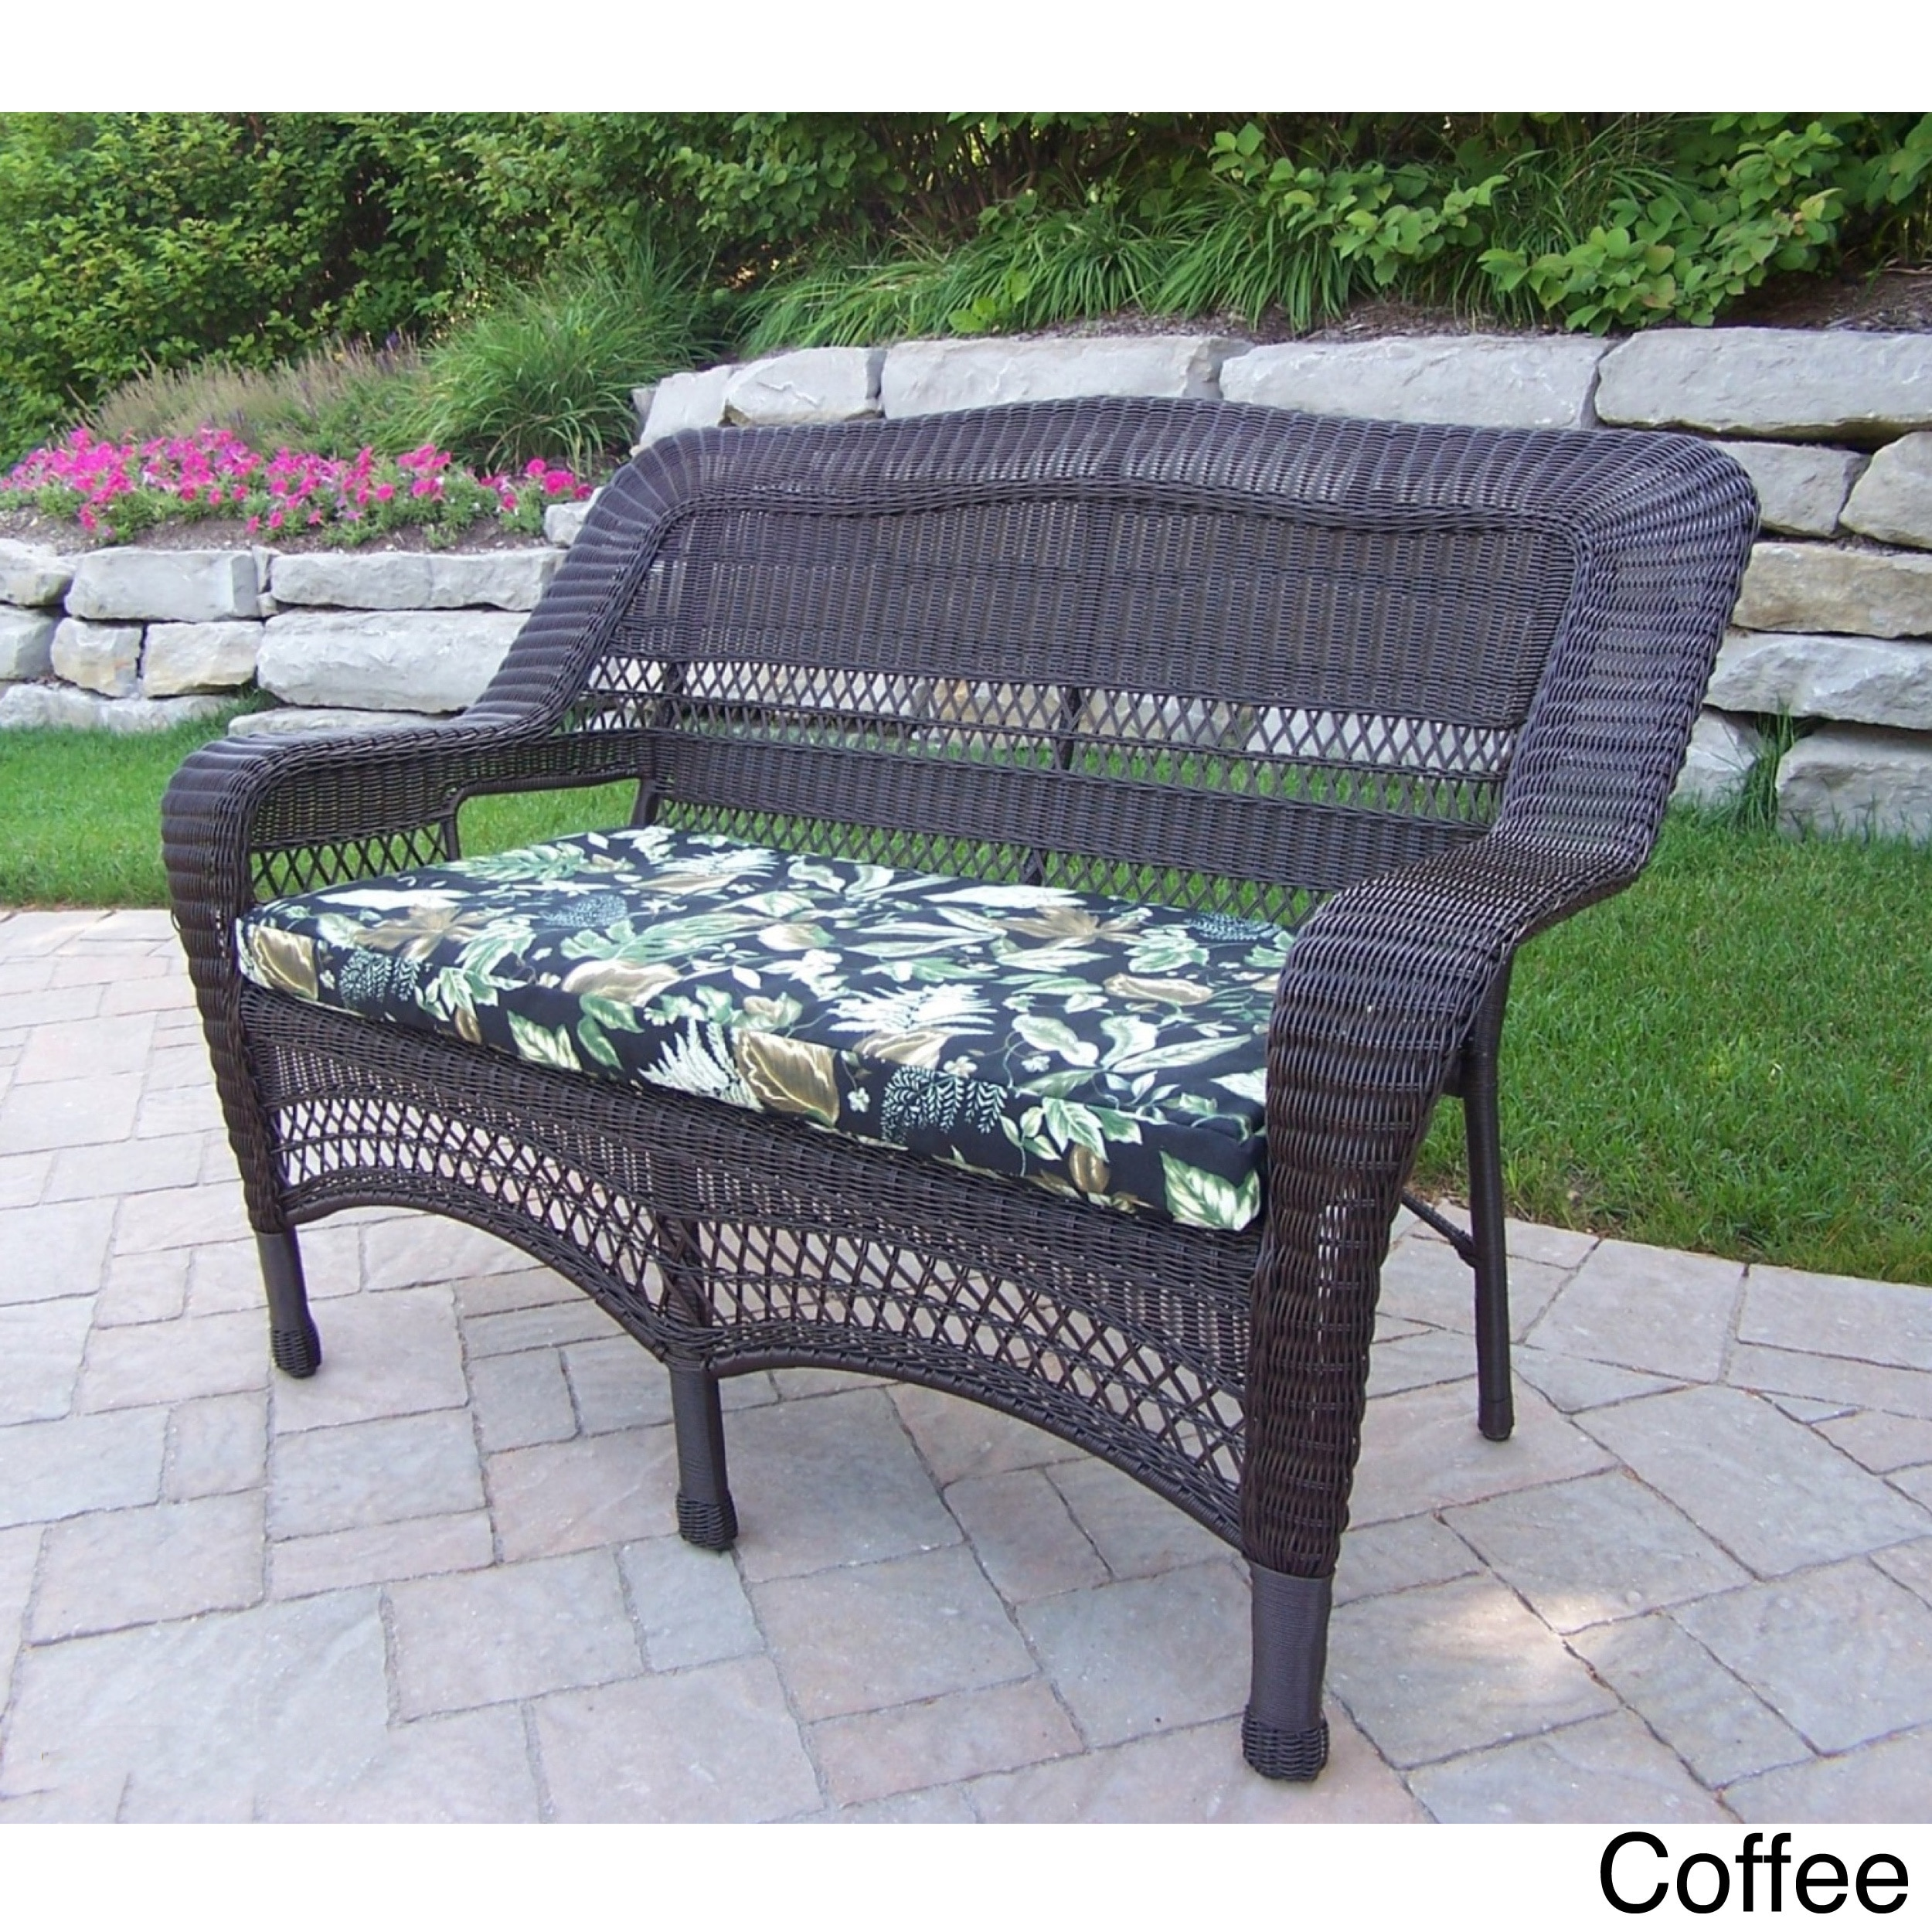 furniture com living resin oakland uyqmgl sets dp loveseat and wicker patio natural amazon garden outdoor